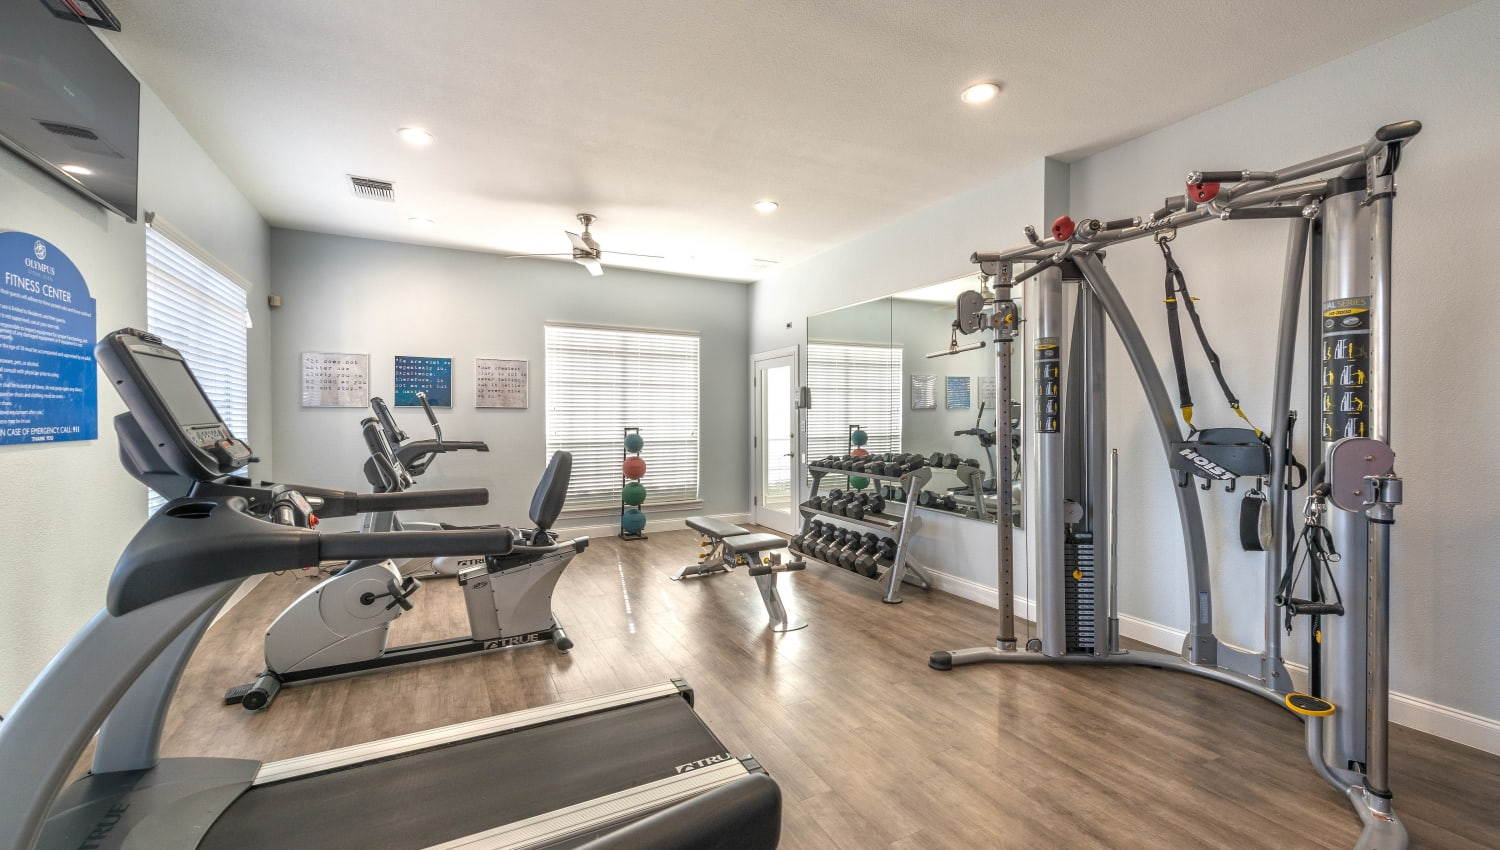 Ample cardio equipment in the fitness center at Olympus Stone Glen in Keller, Texas